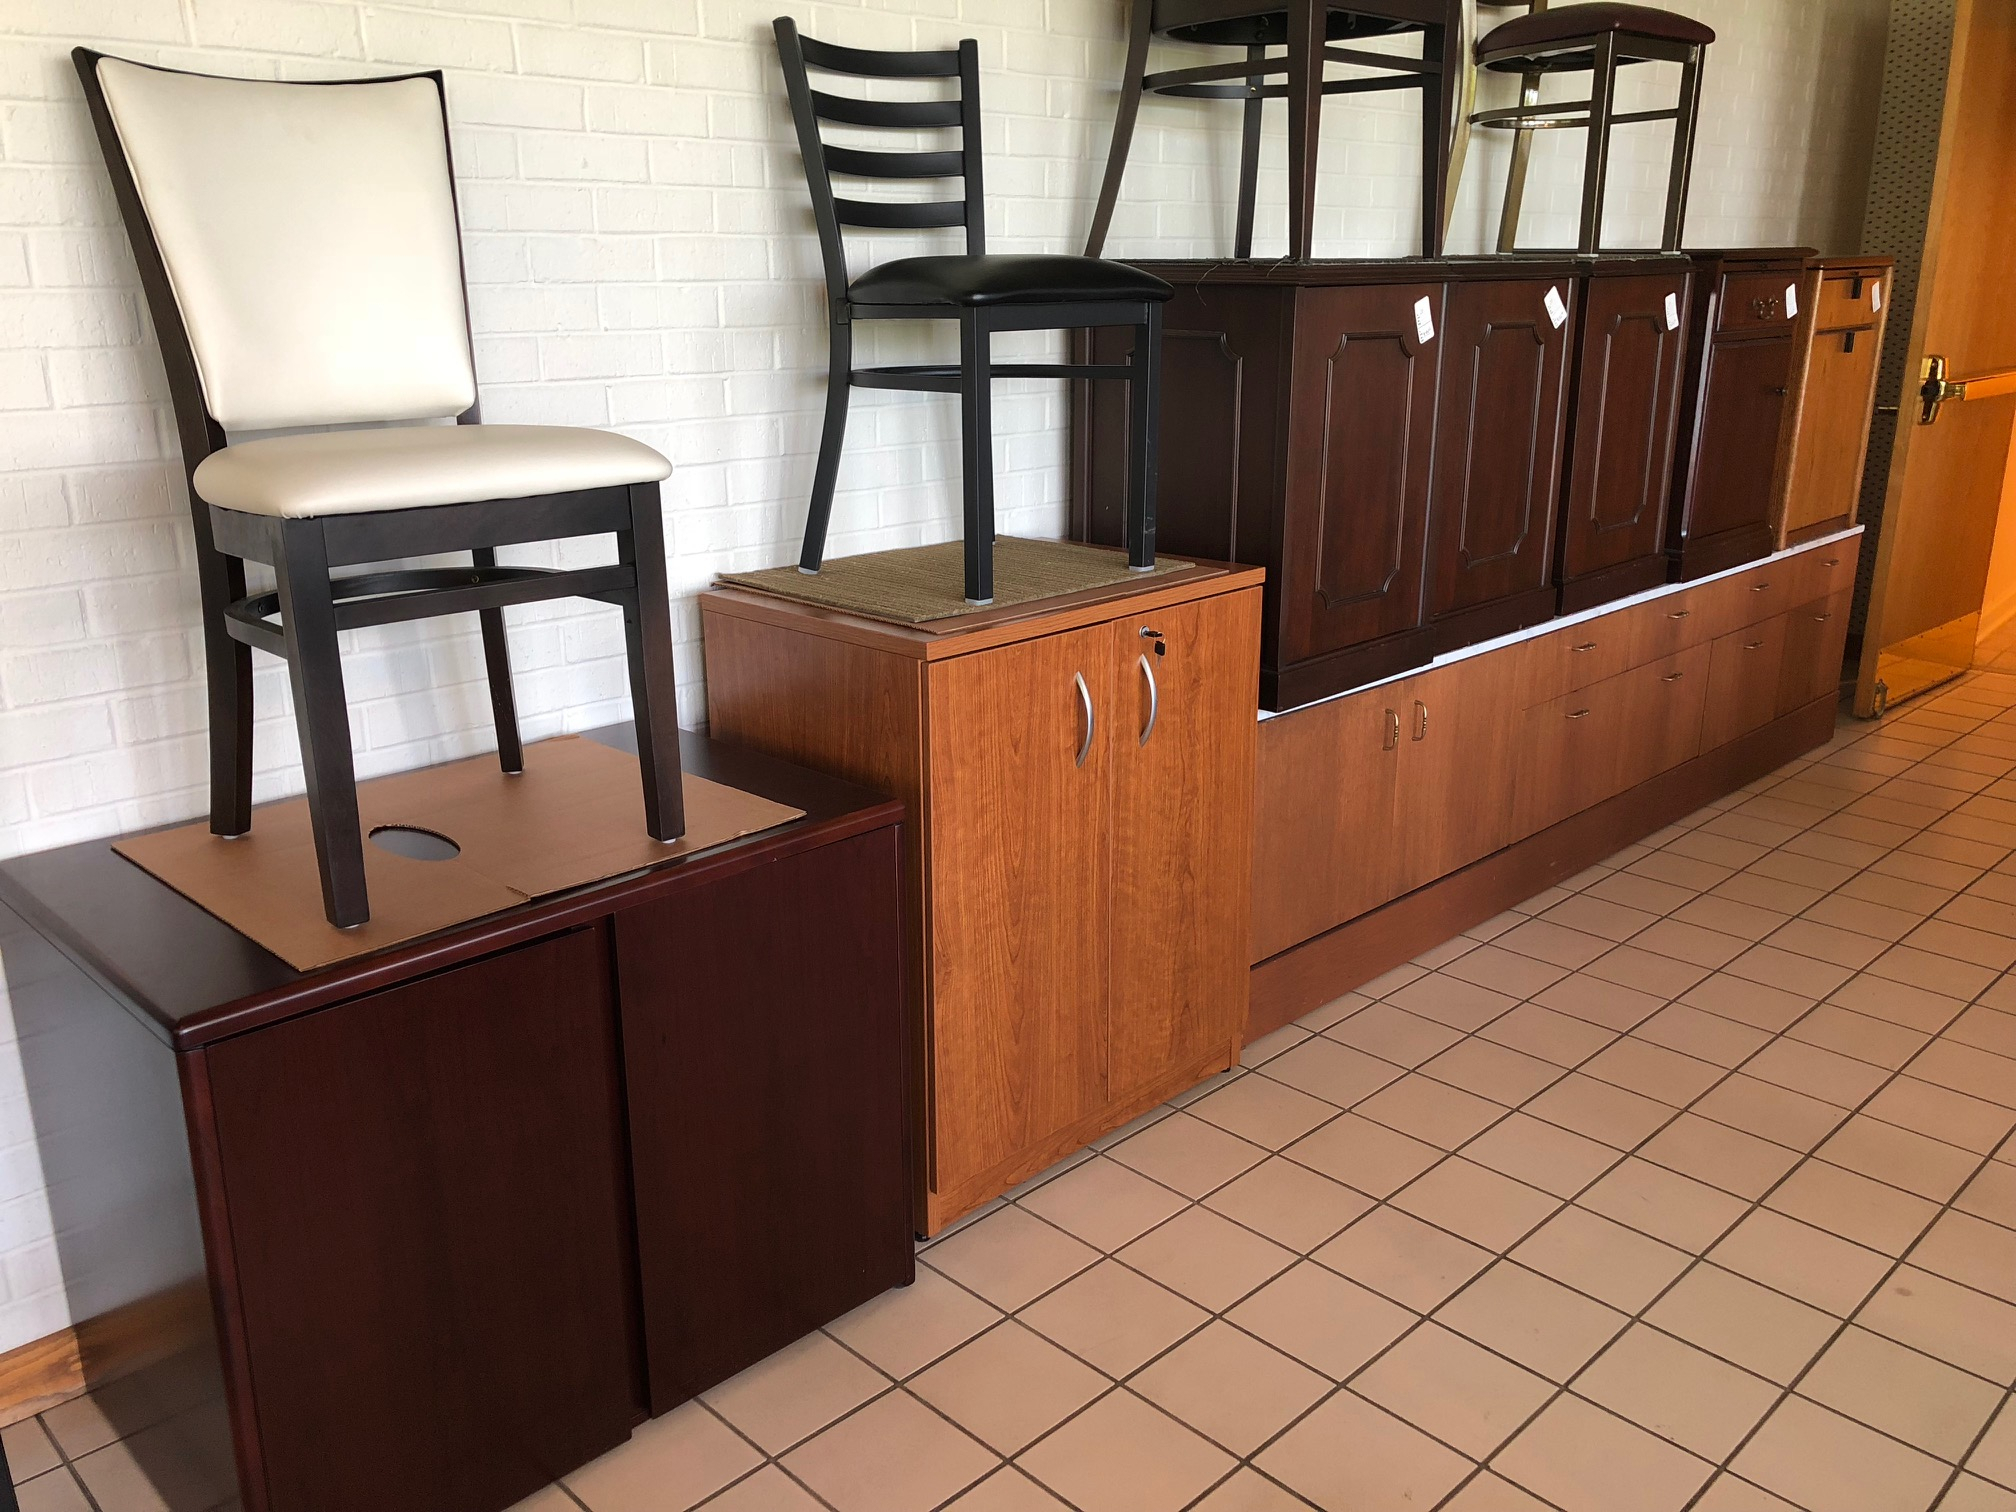 Workspace Solutions – Office Furniture Fort Wayne Intended For Summer Desire Credenzas (View 30 of 30)